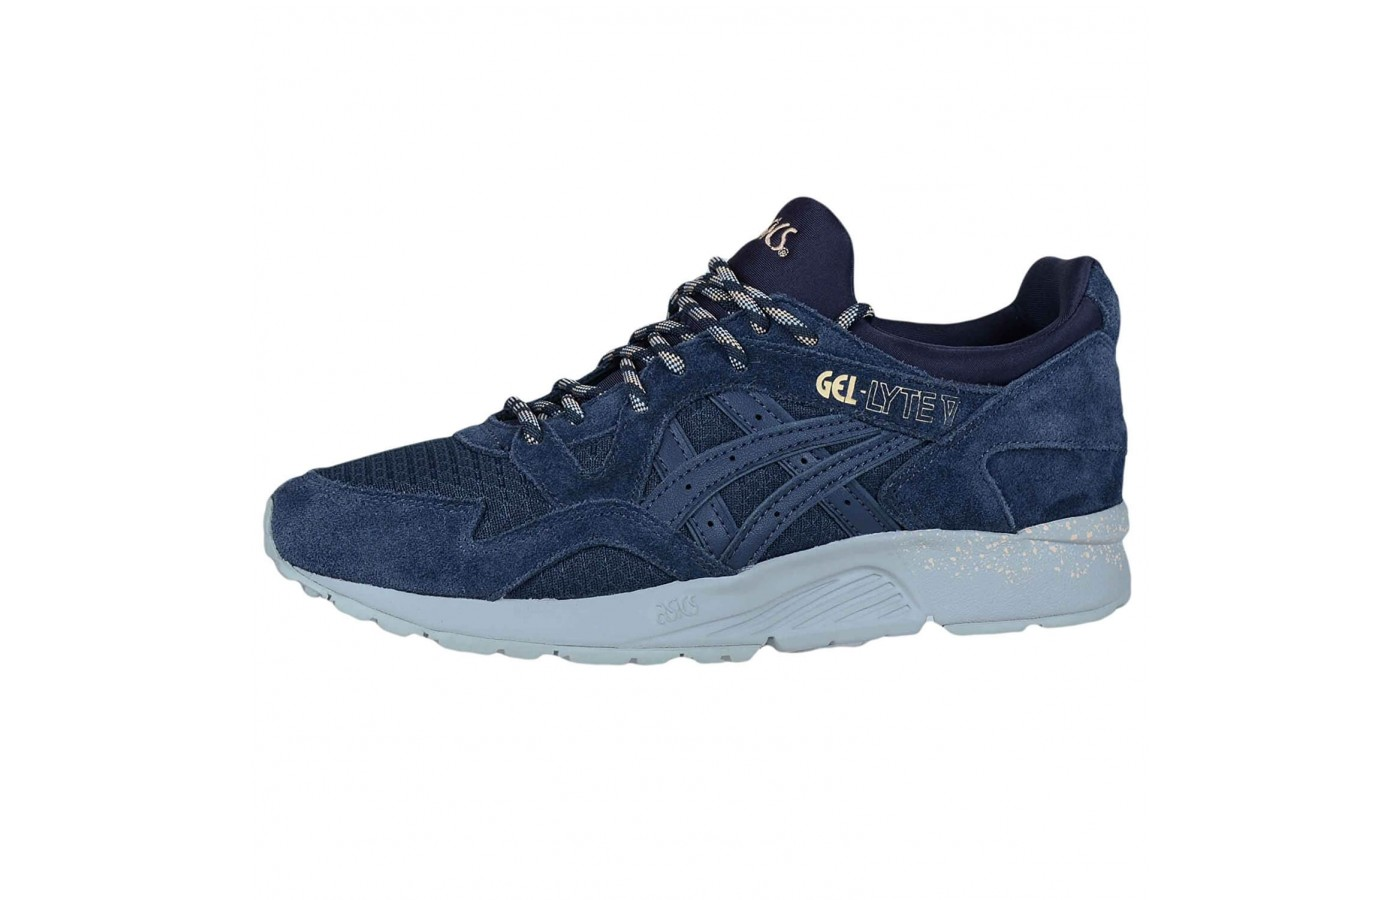 The Asics Gel Lyte V features GEL cushioning